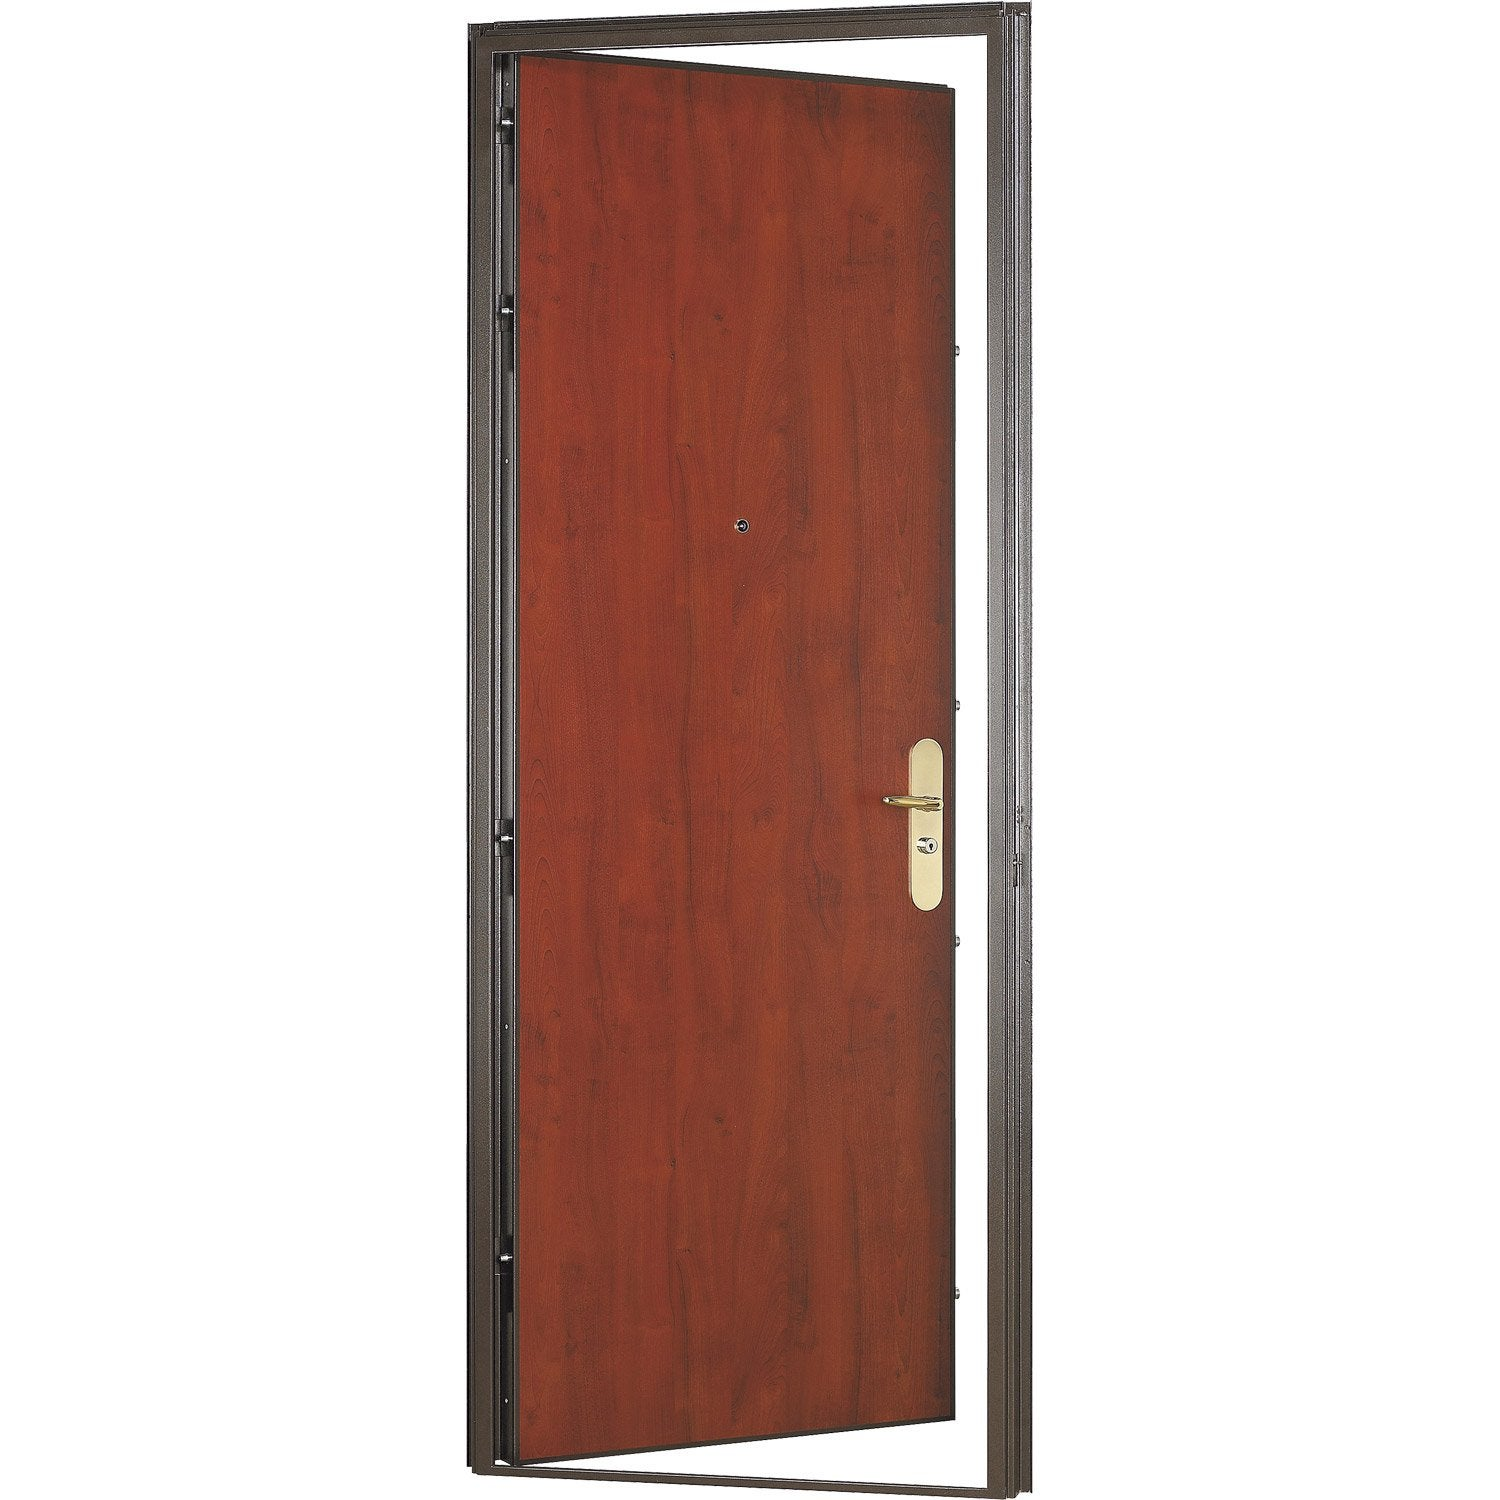 Porte blind e sur mesure diamant 2 leroy merlin for Porte appartement bois